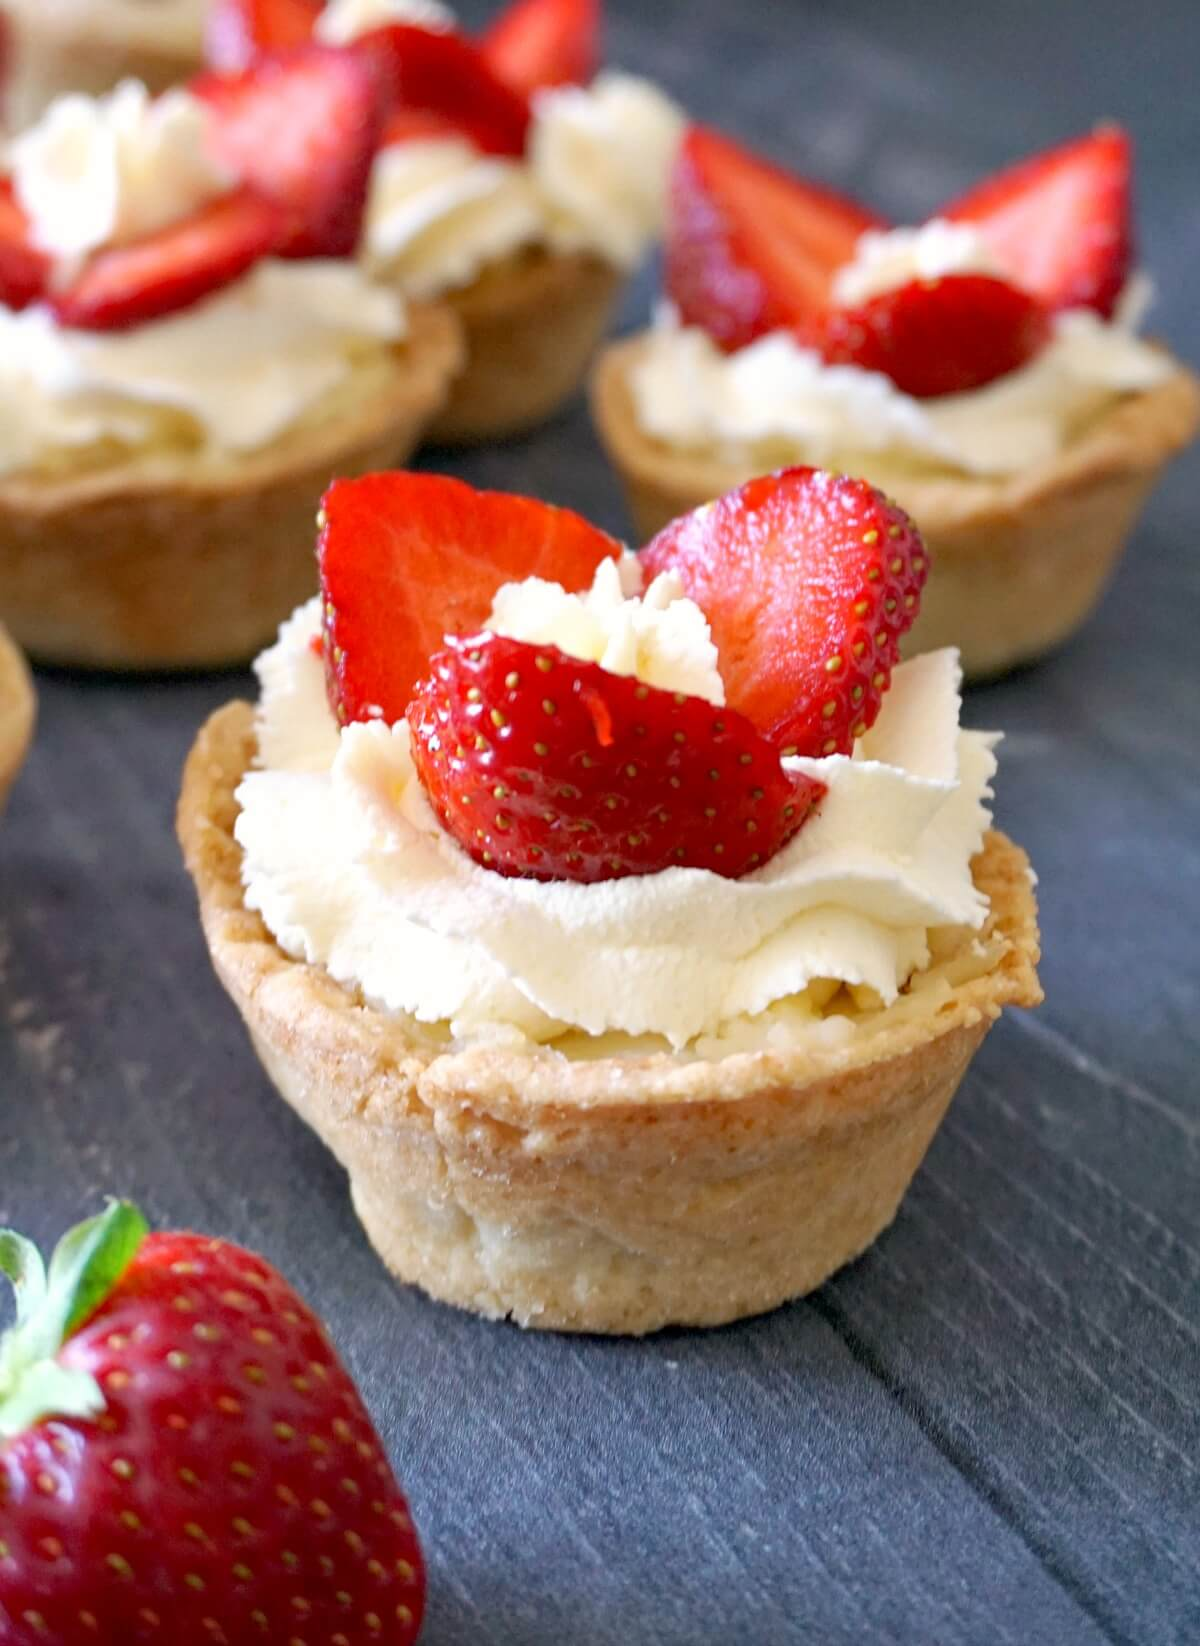 A tartlet with cream and 3 strawberry slices with other tartlets in the background